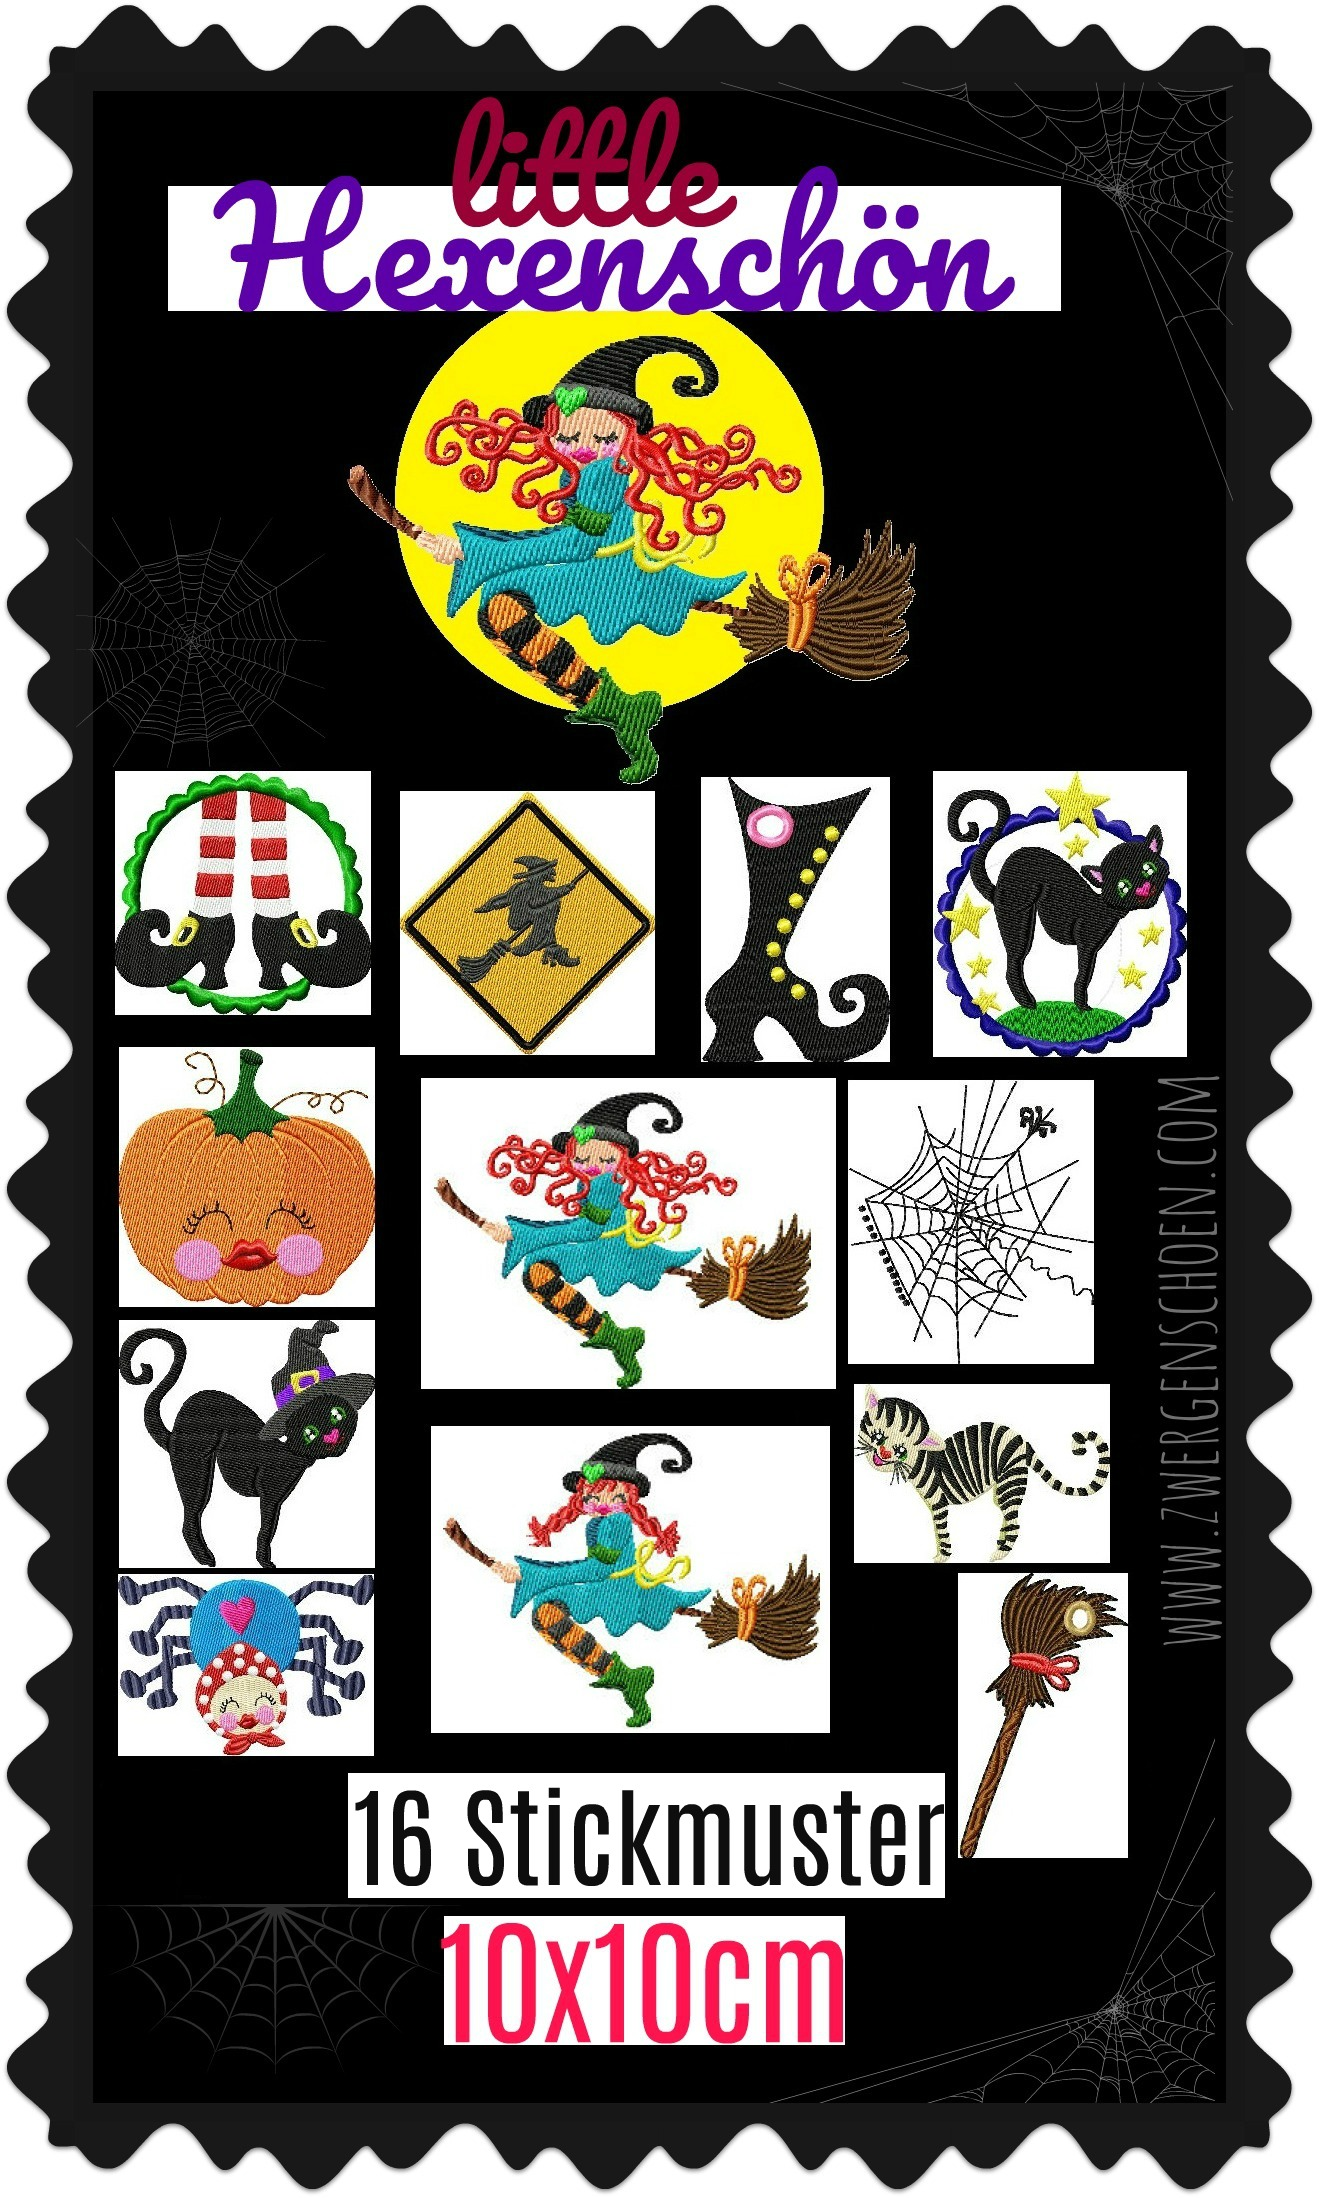 ♥little HEXENSCHoeN♥ Embroidery FILE-Set WITCH 10x10cm